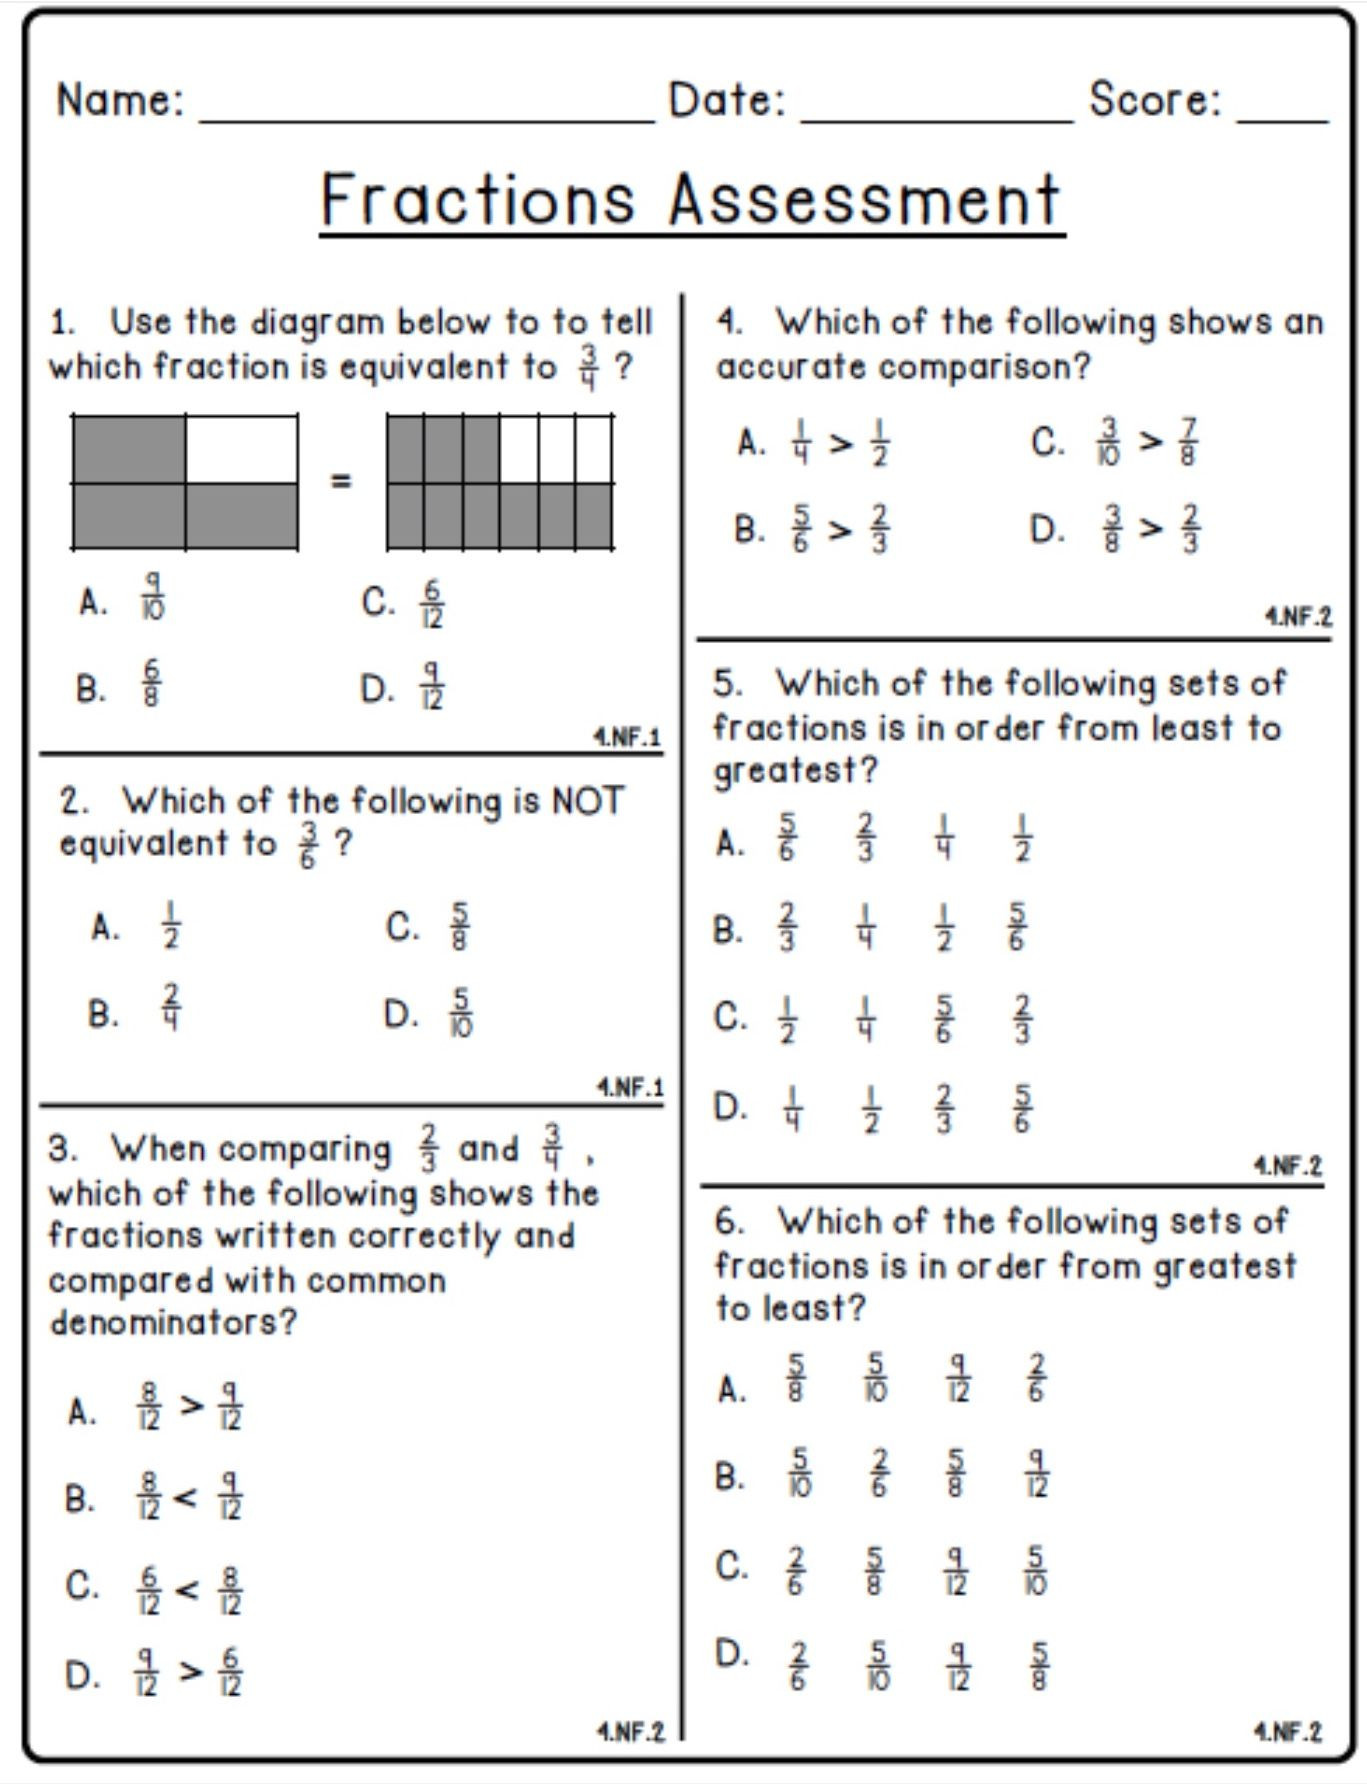 Decomposing Fractions Worksheets 4th Grade 5th Grade Fraction Worksheet Printable Christmas